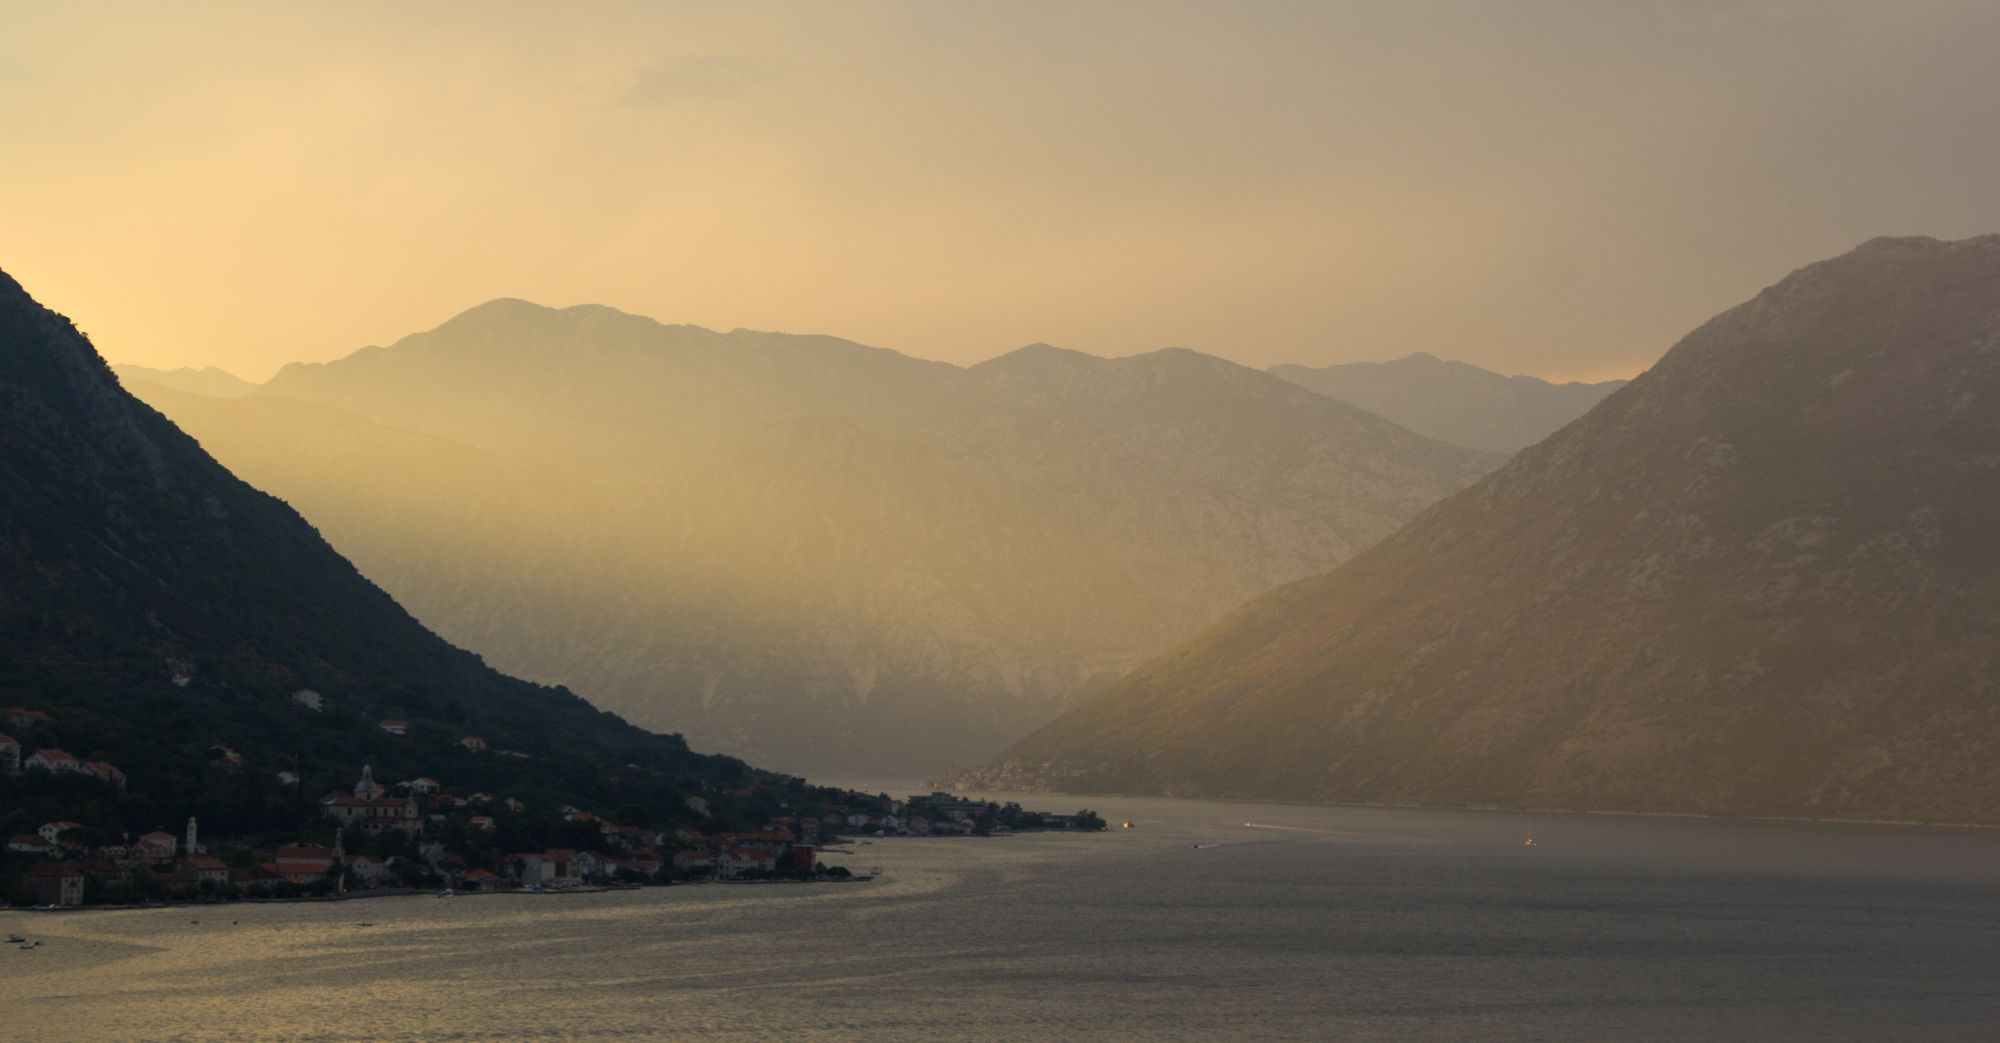 Montenegro: Mountains to Coast in 2 hours